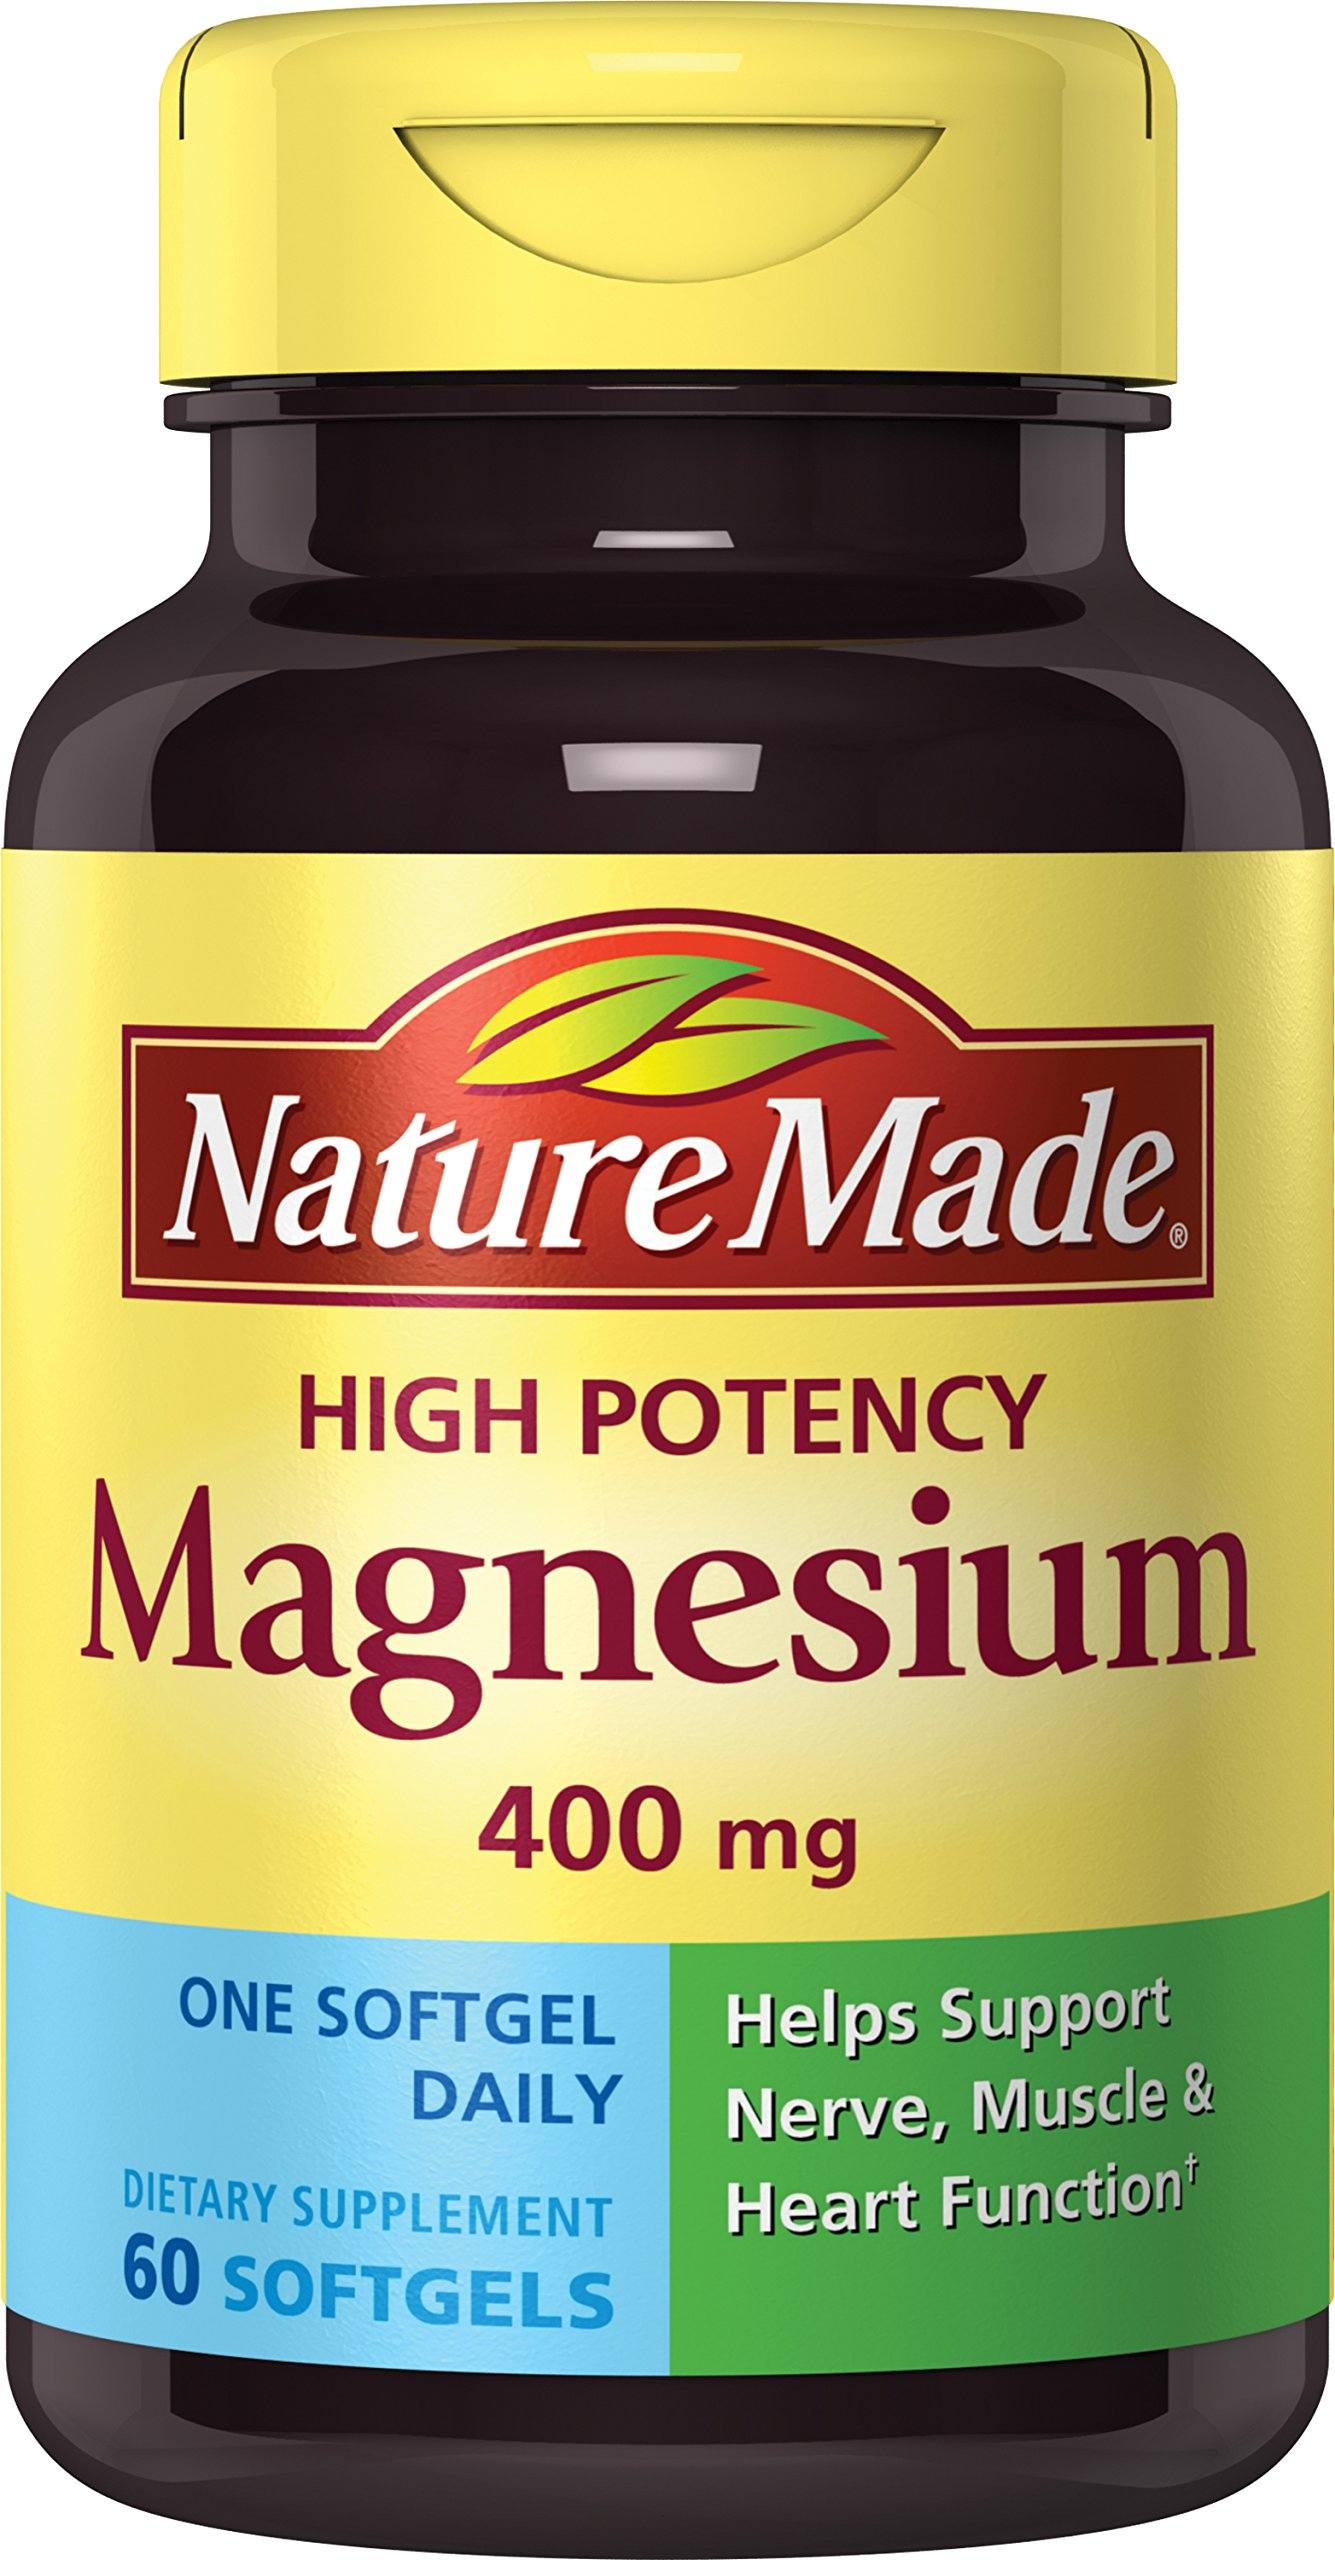 Nature Made High Potency Magnesium Softgels, 60 count